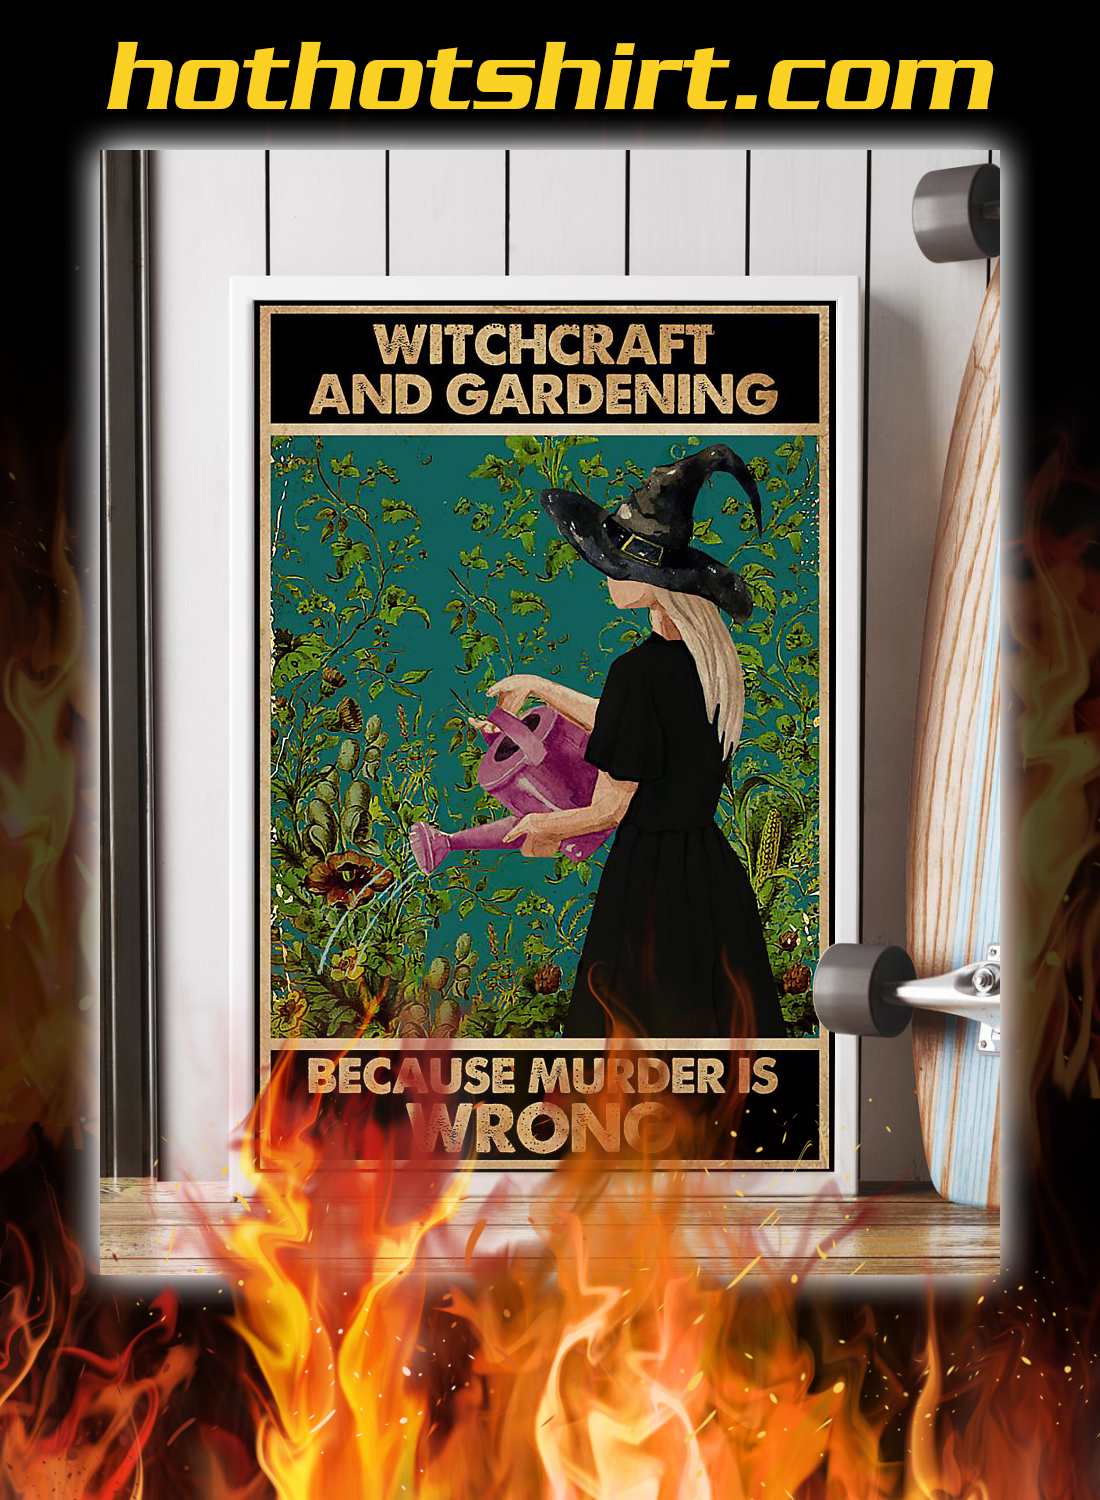 Witchcraft and gardening becasue murder is wrong poster 2